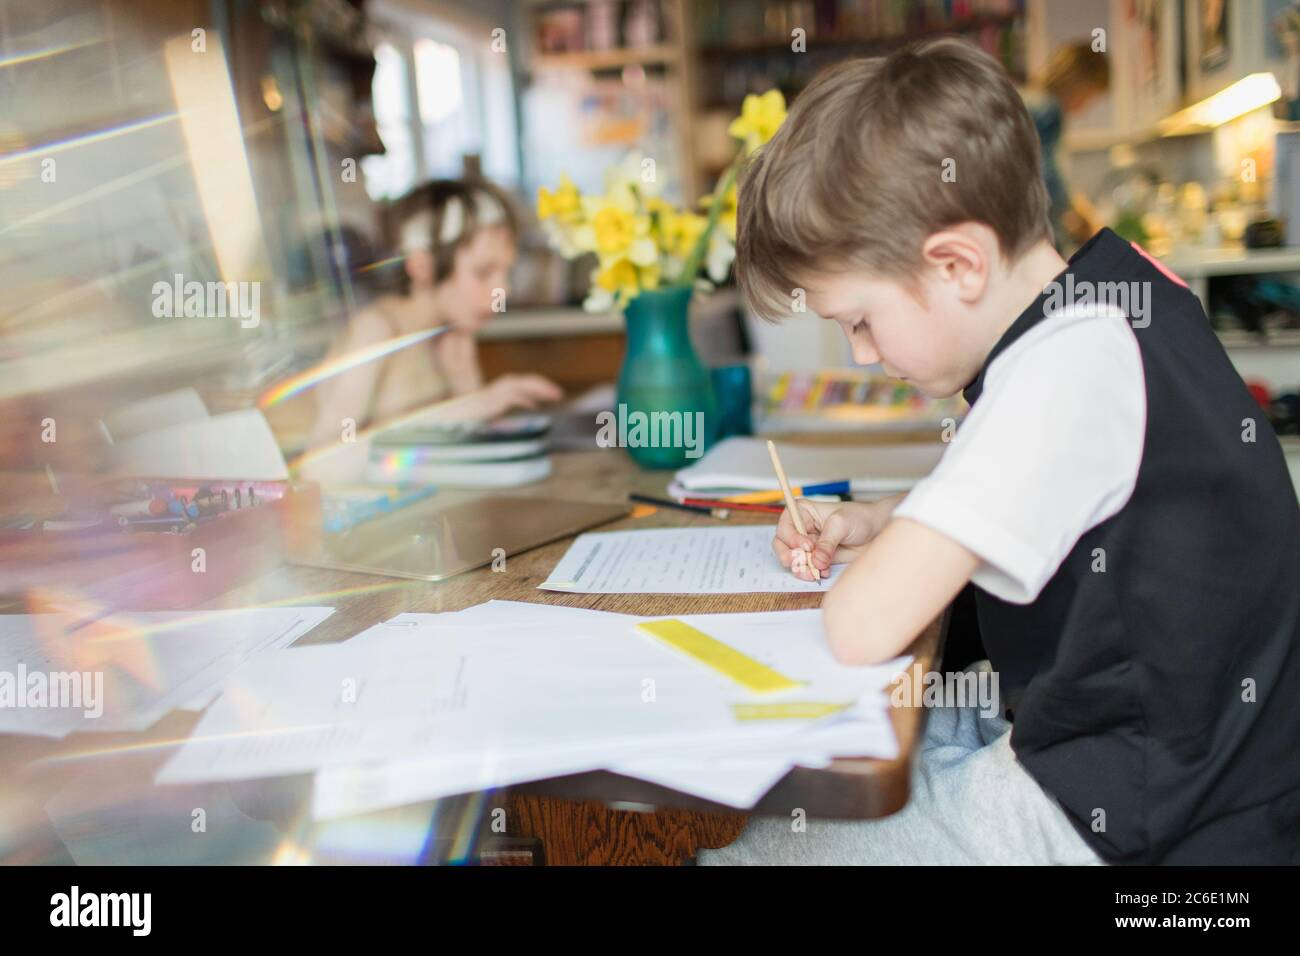 Boy doing homework at dining table Stock Photo